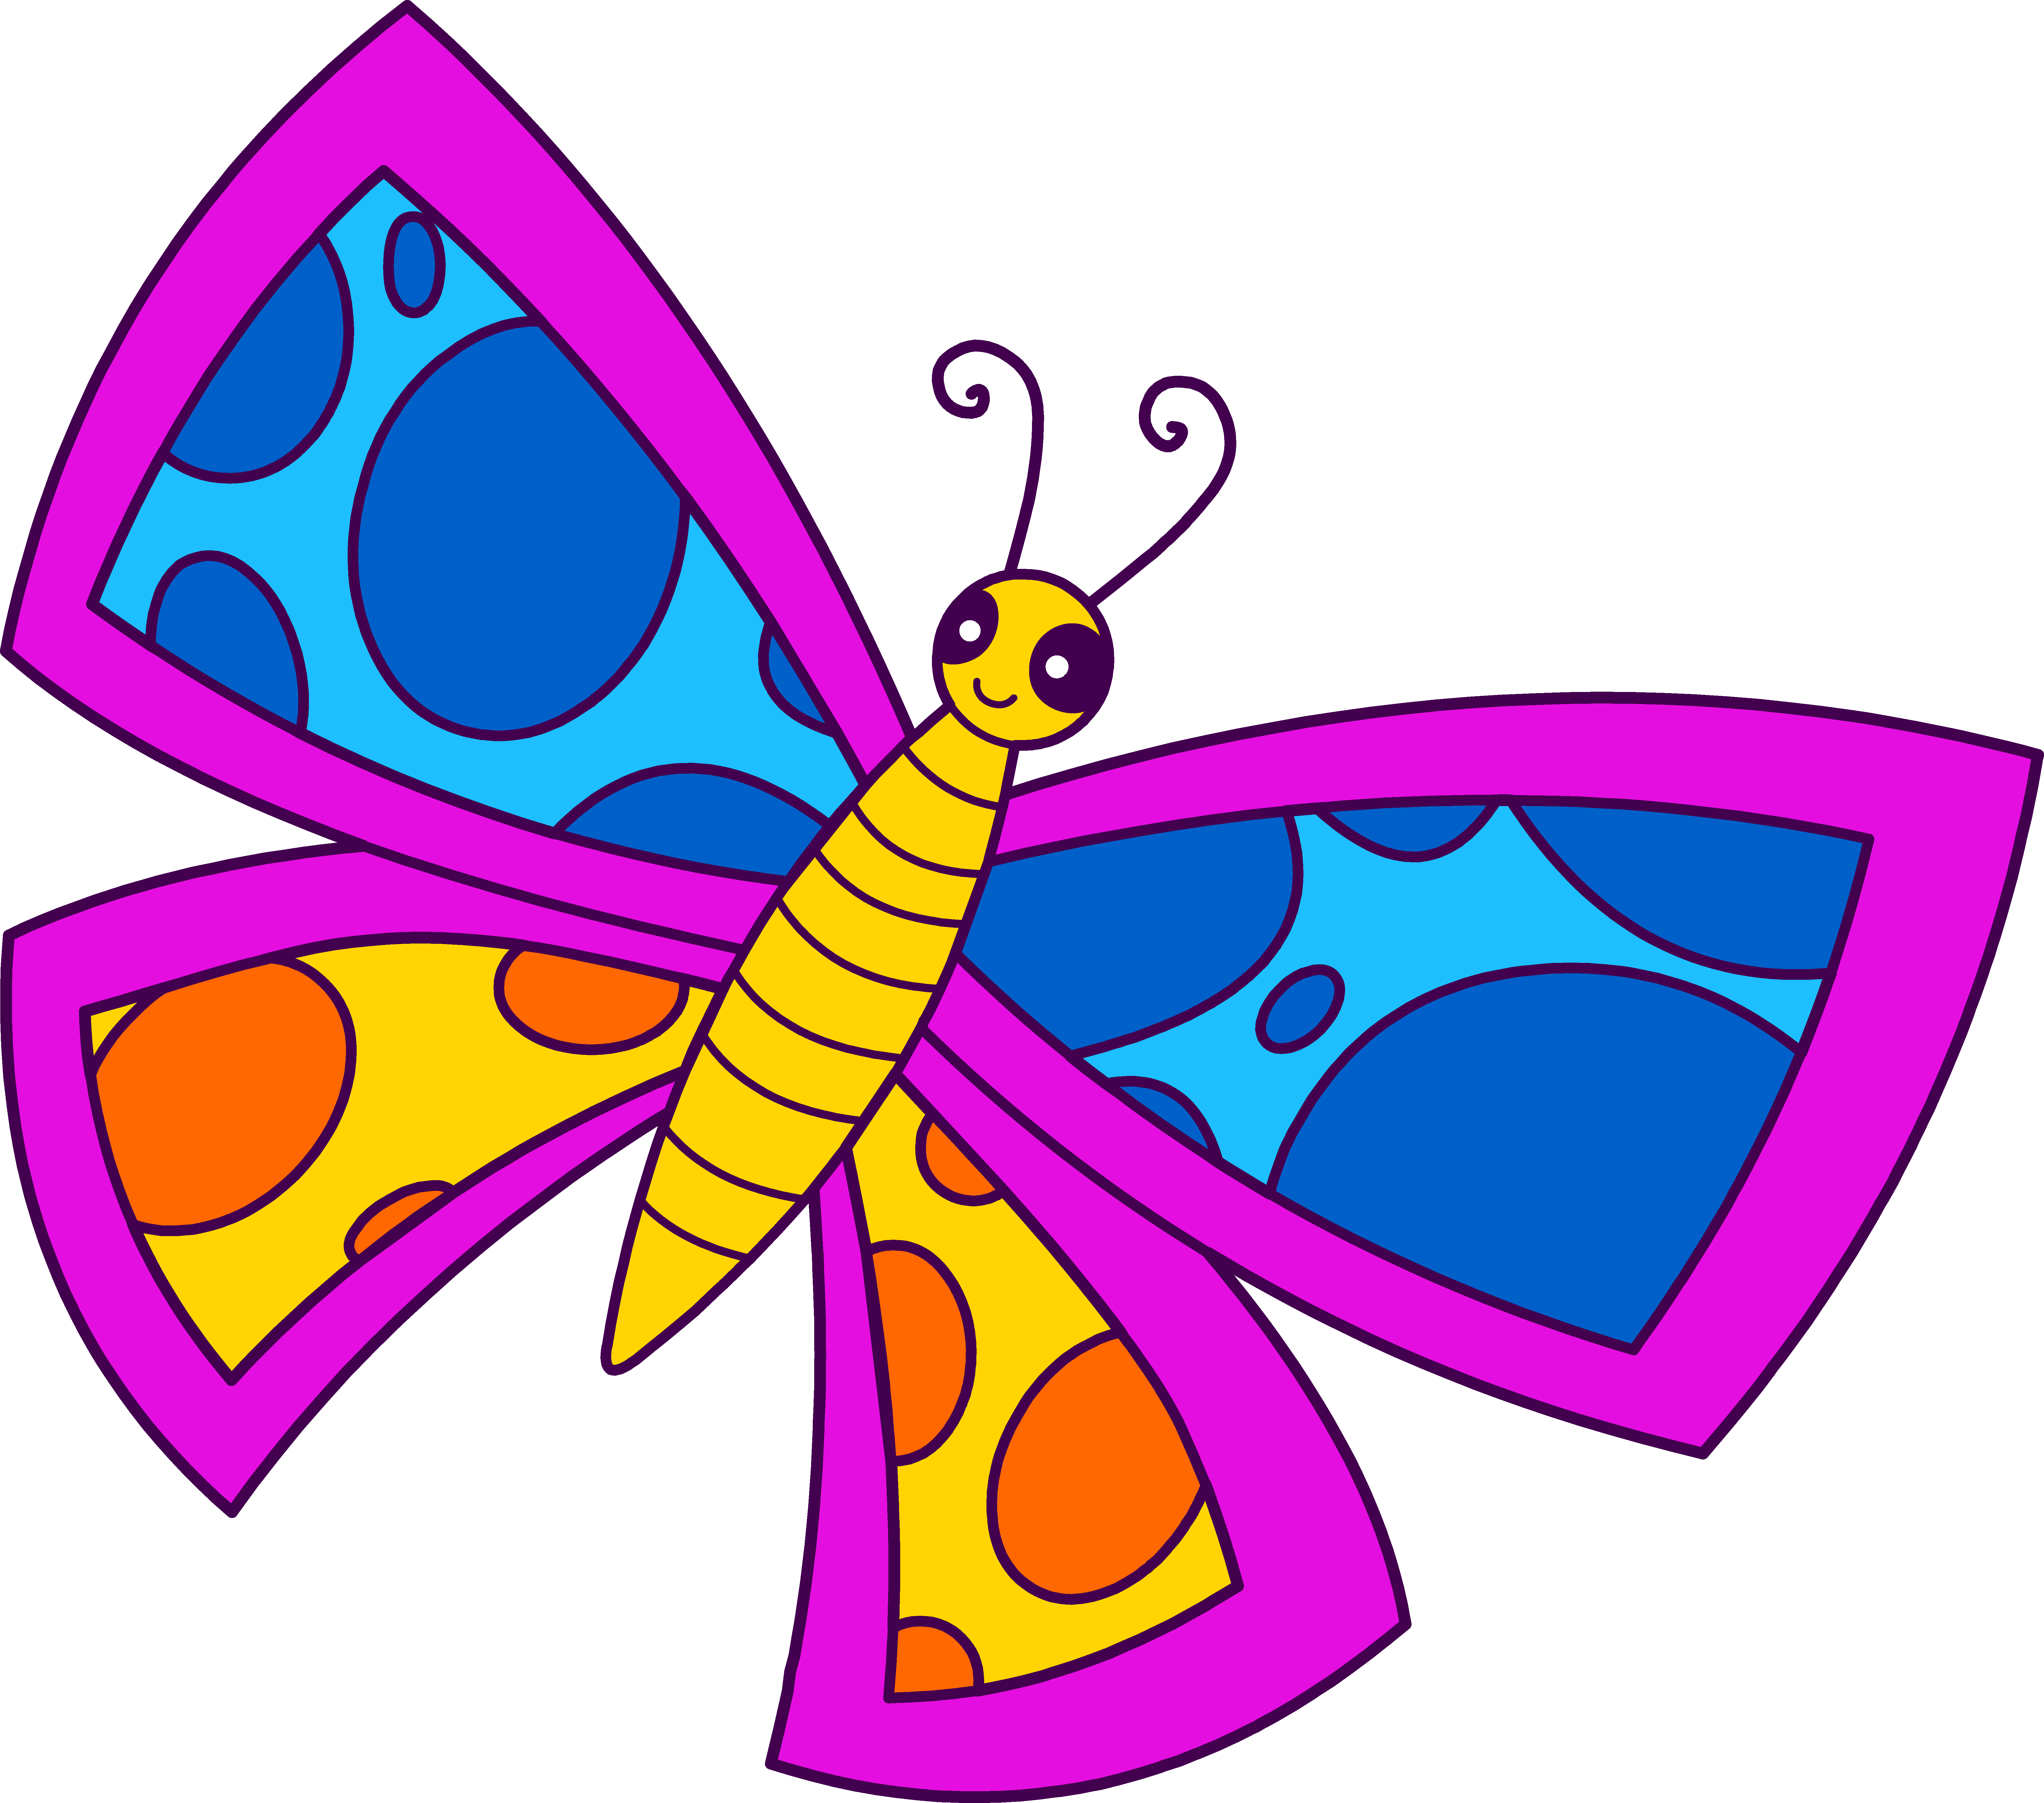 Free Cartoon Butterfly Images, Download Free Clip Art, Free.